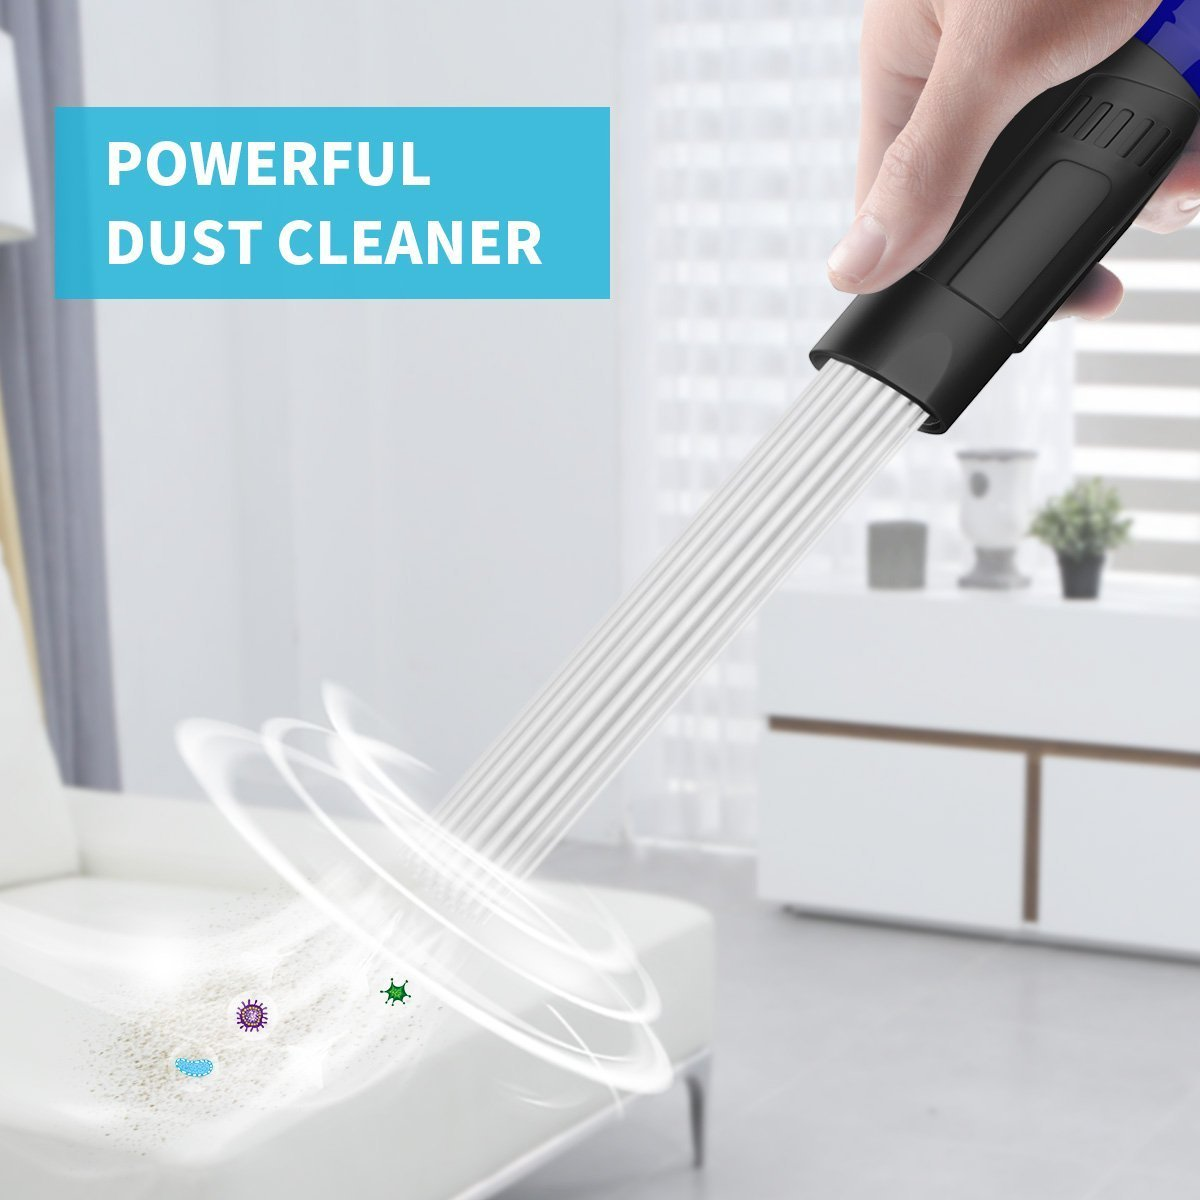 AIMEN dust cleaner Drawers,Air Vents Strong Suction Perfect for Corners Small Suction Brush Tubes Flexible Access to Anywhere Vacuum Cleaner Dust Dirt Pro Remover Universal Attachment Tool Pets